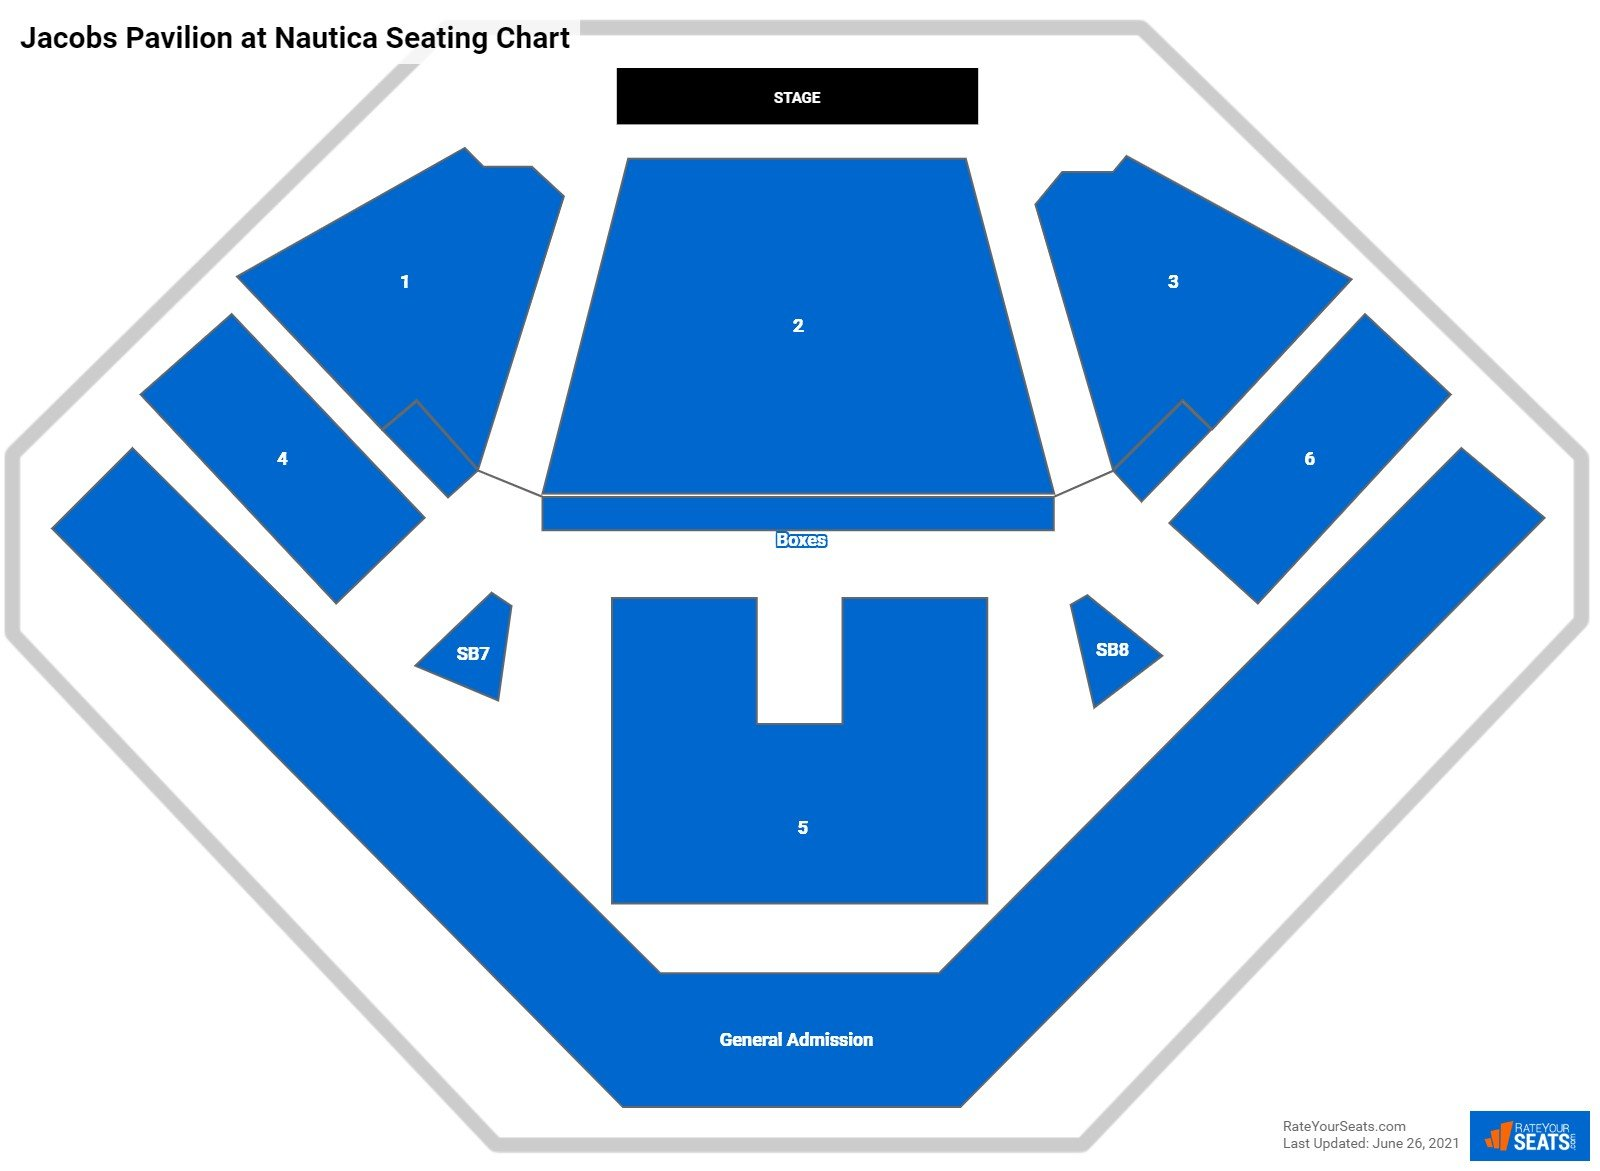 Jacobs Pavilion at Nautica Seating Chart